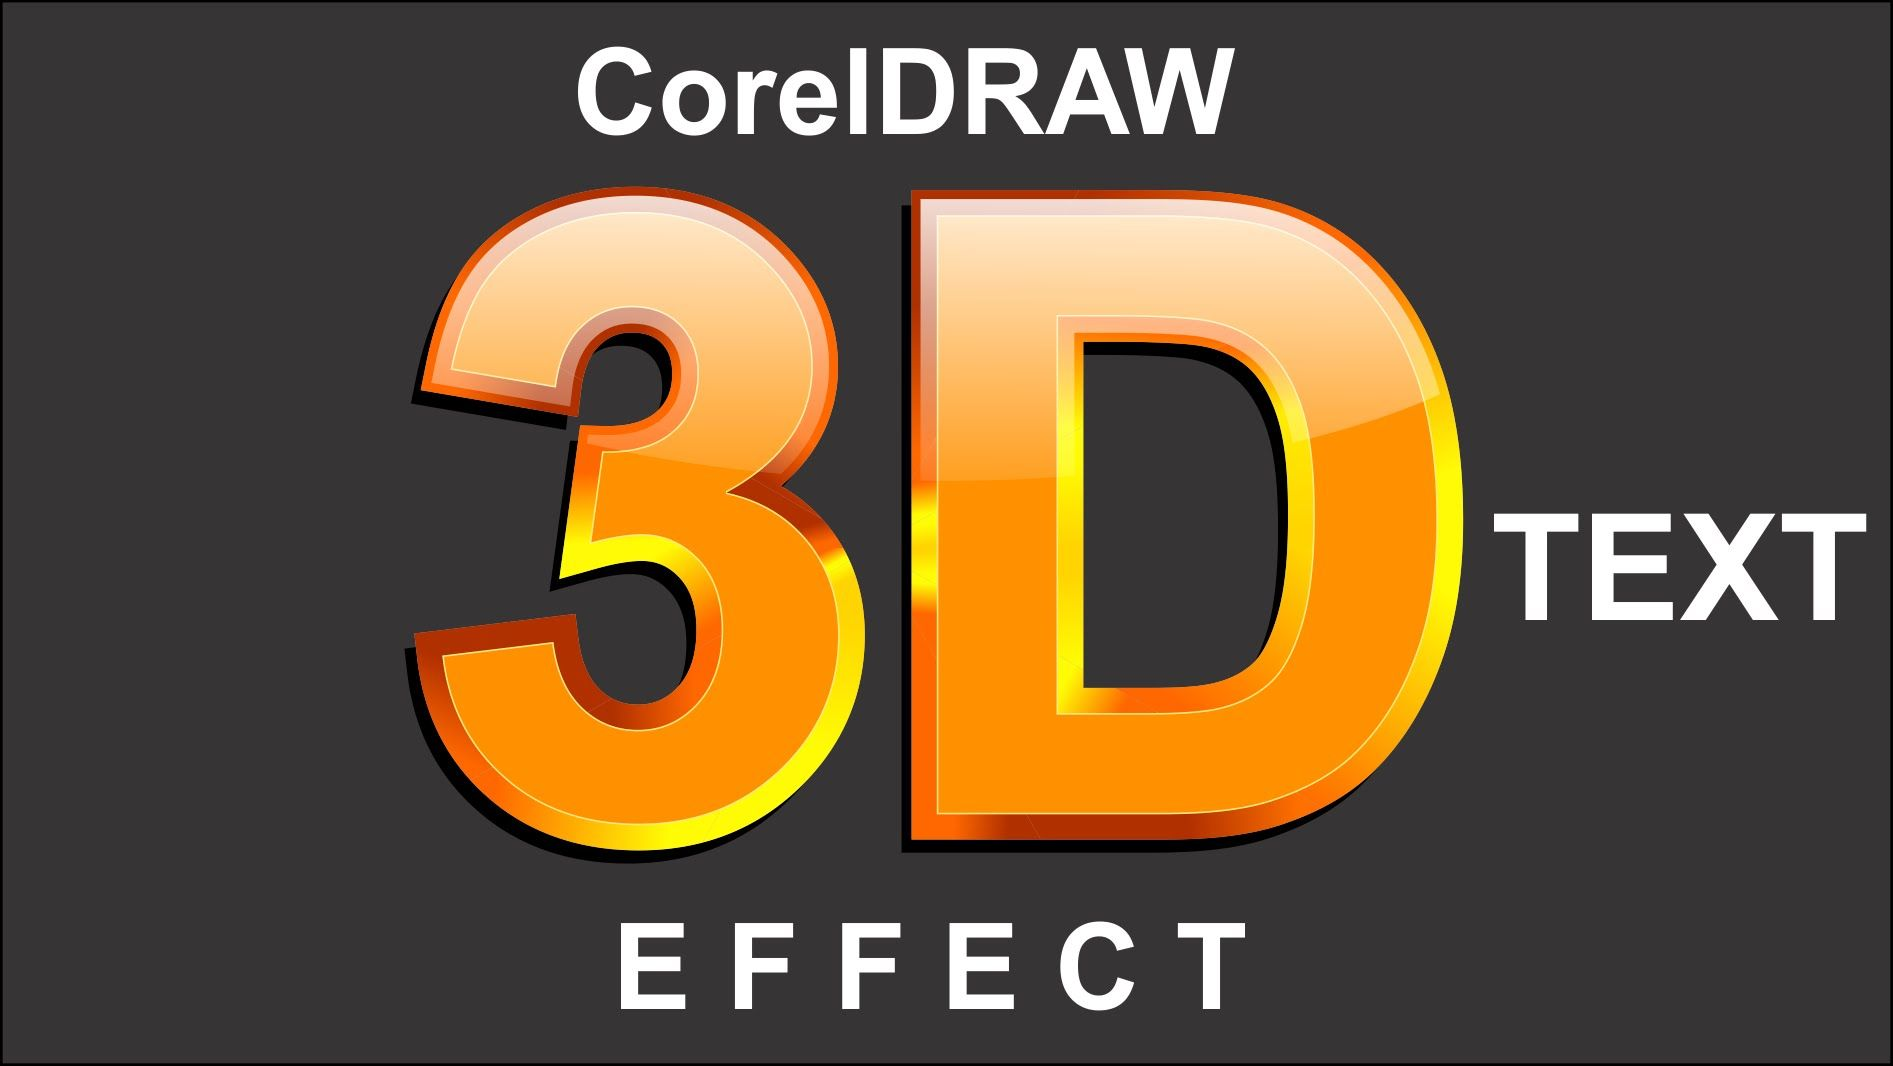 coreldraw x8 3d text design effects corel draw font tutorial coreldraw tutorials. Black Bedroom Furniture Sets. Home Design Ideas